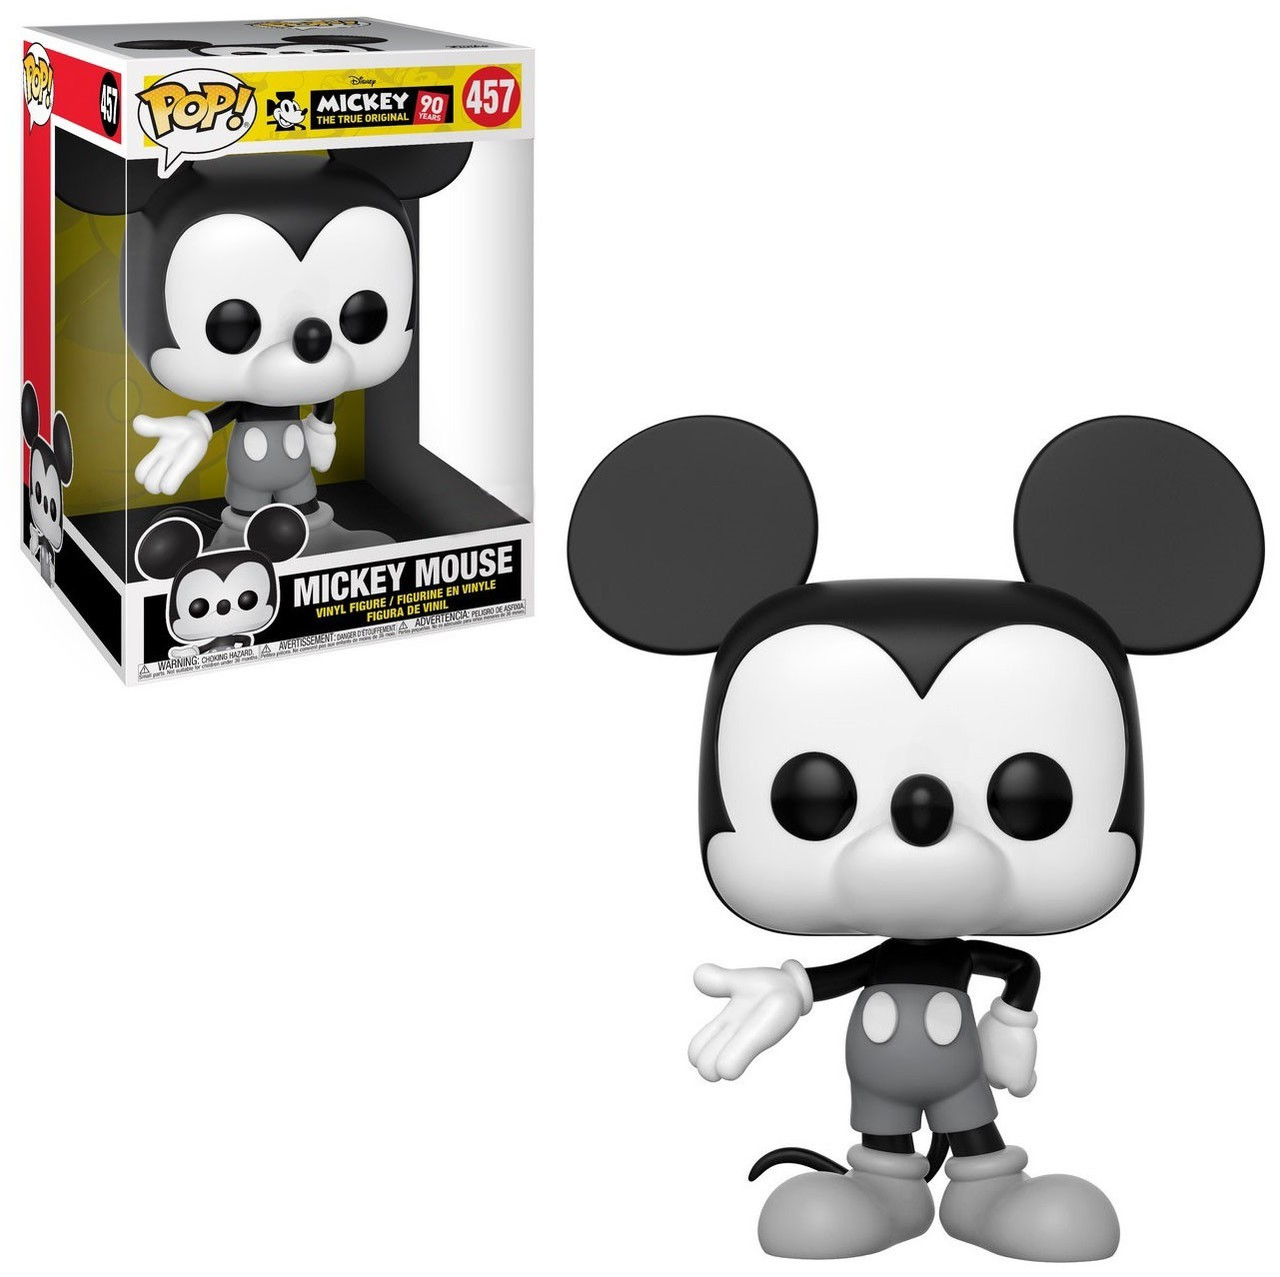 Disney Mickey Mickey The True Original Funko Pop Disney Mickey Mouse Exclusive 10 Inch Vinyl Figure 457 Super Sized